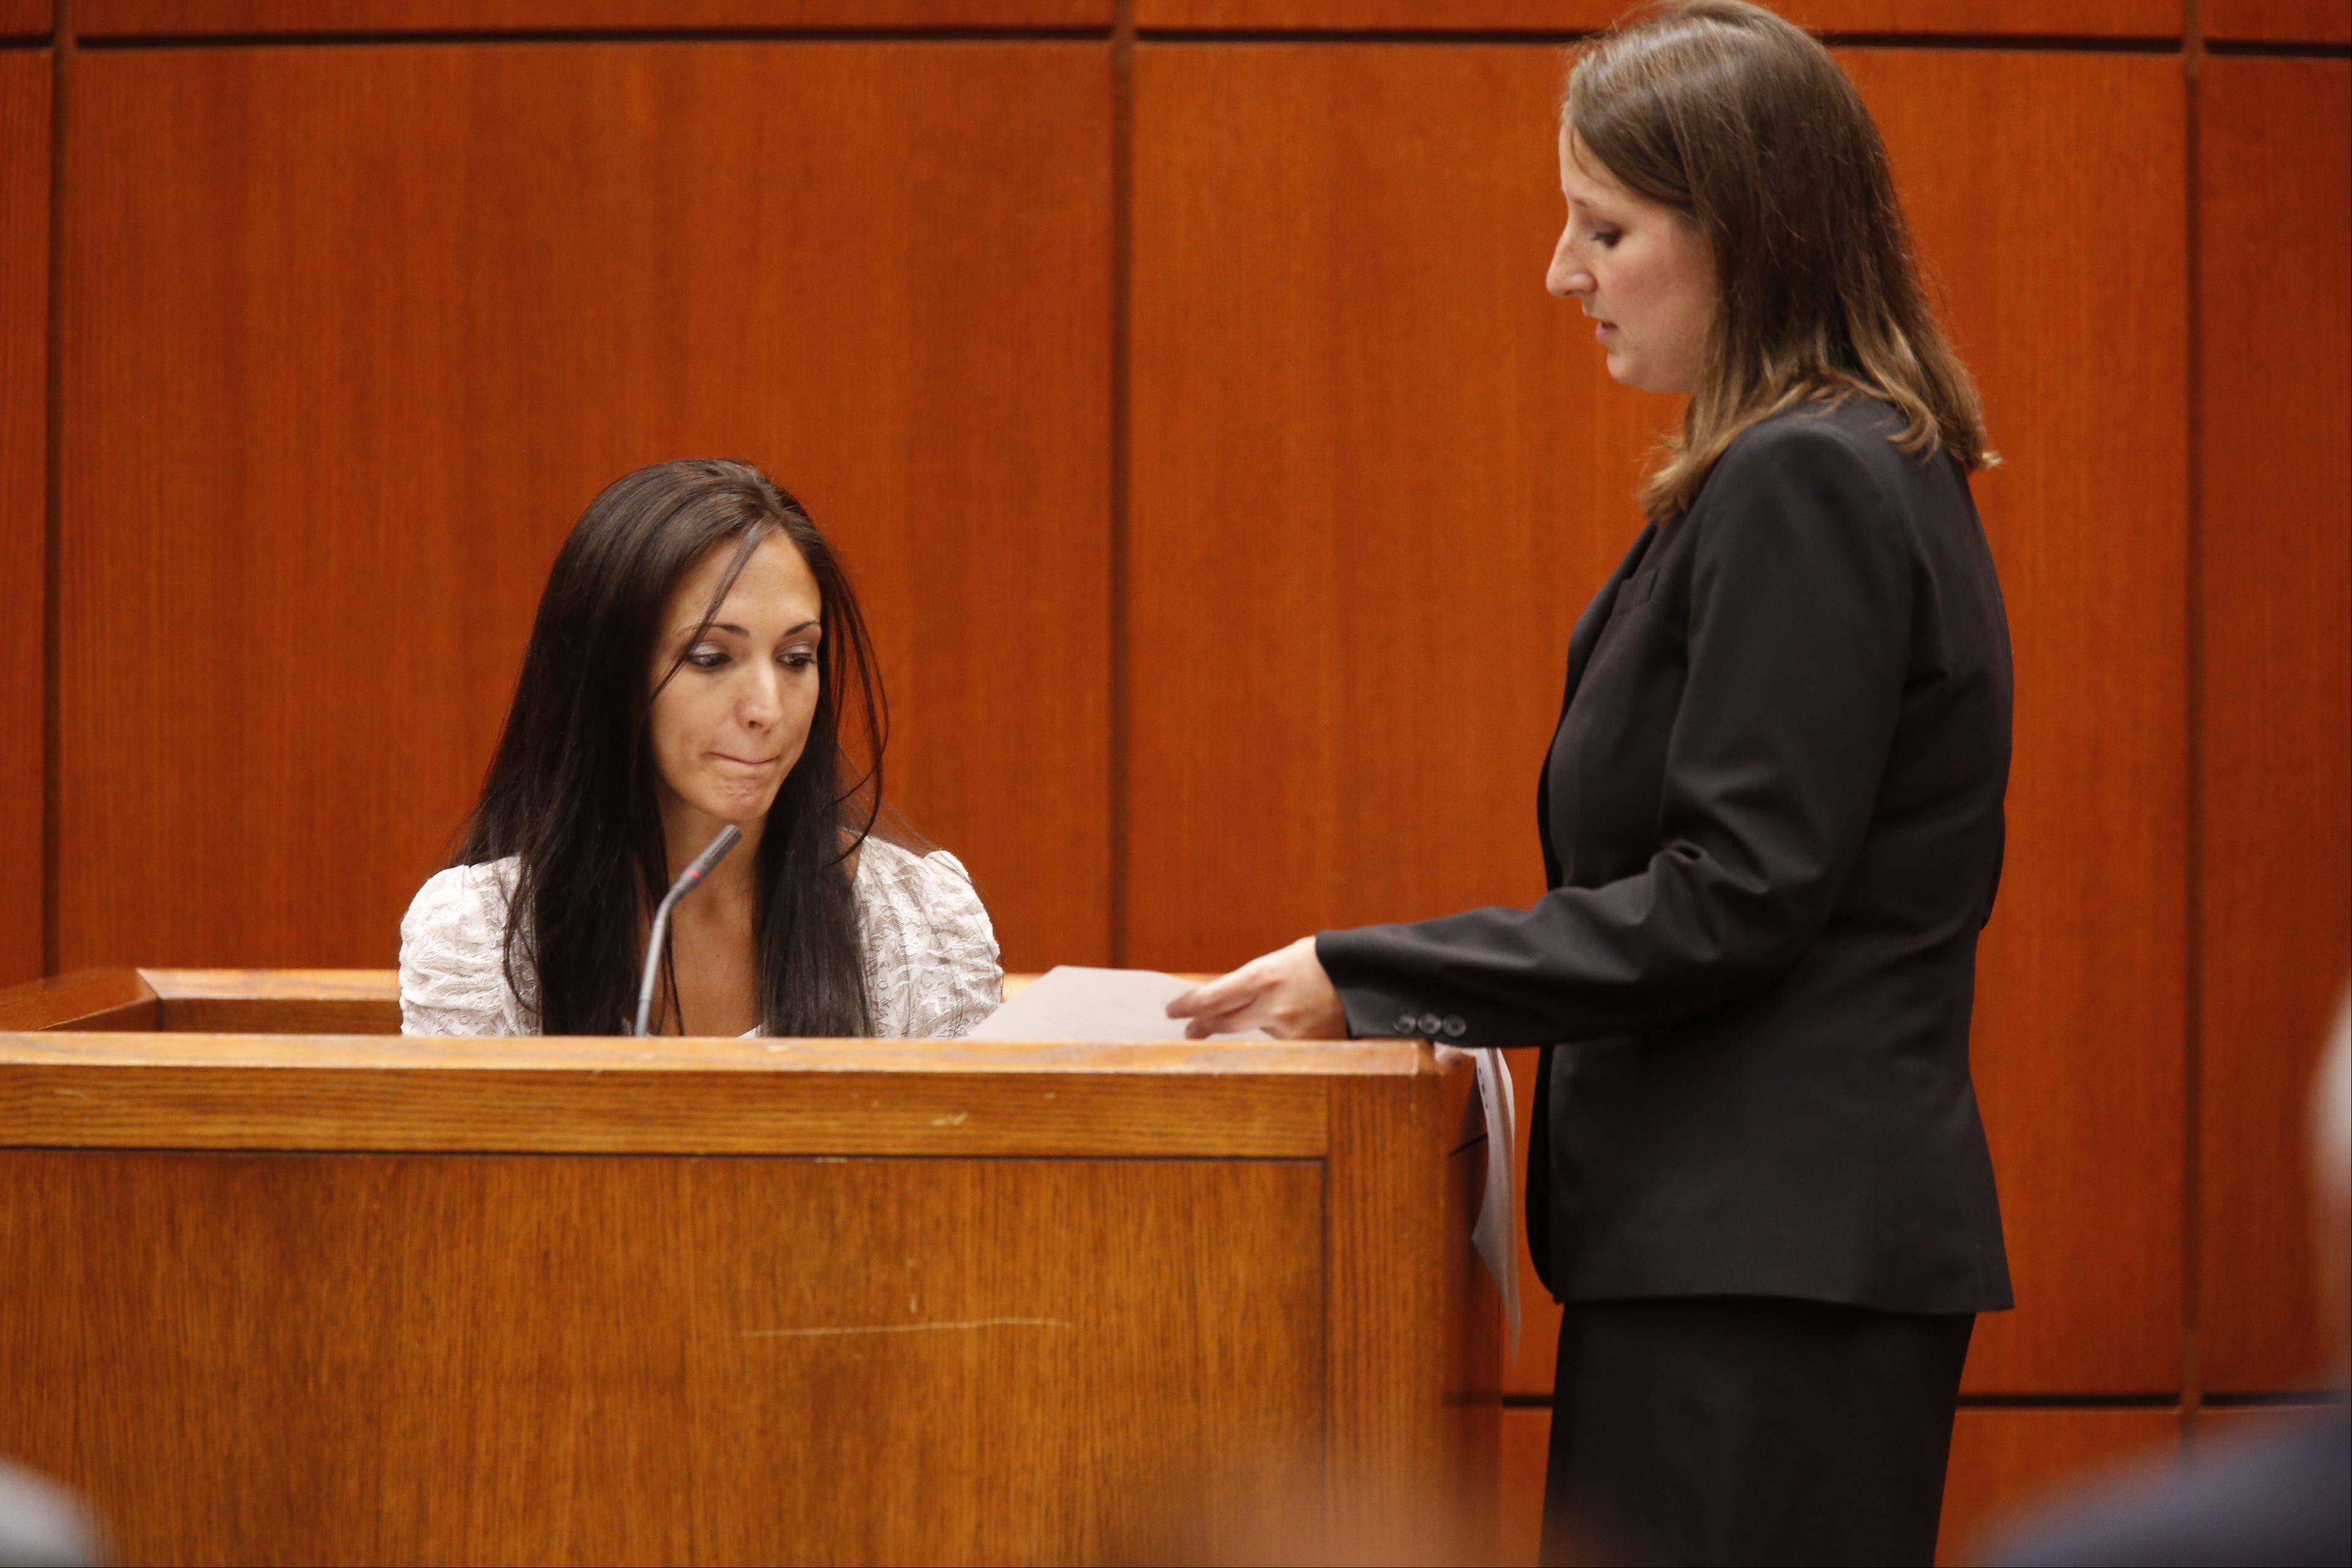 Angela Kramer, left, the daughter of Jeffrey and Lori Kramer and the sister of Michael Kramer, reads her impact statement Monday at the sentencing of Jacob Nodarse at the DuPage County Courthouse in Wheaton.